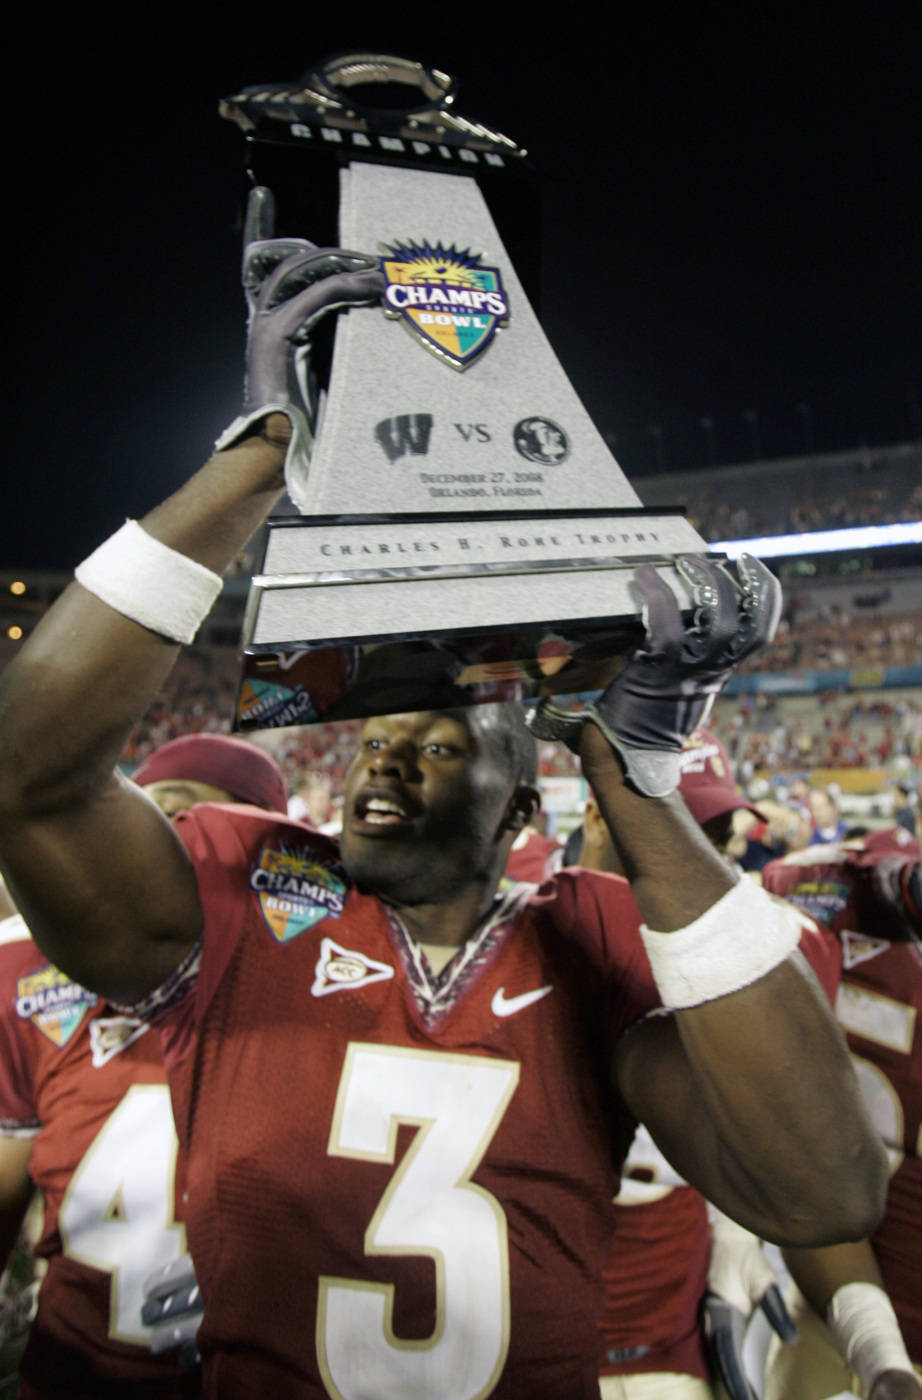 Florida State safety Myron Rolle holds up the trophy after defeating Wisconsin 42-13 in the Champs Sports Bowl. (AP Photo/John Raoux)